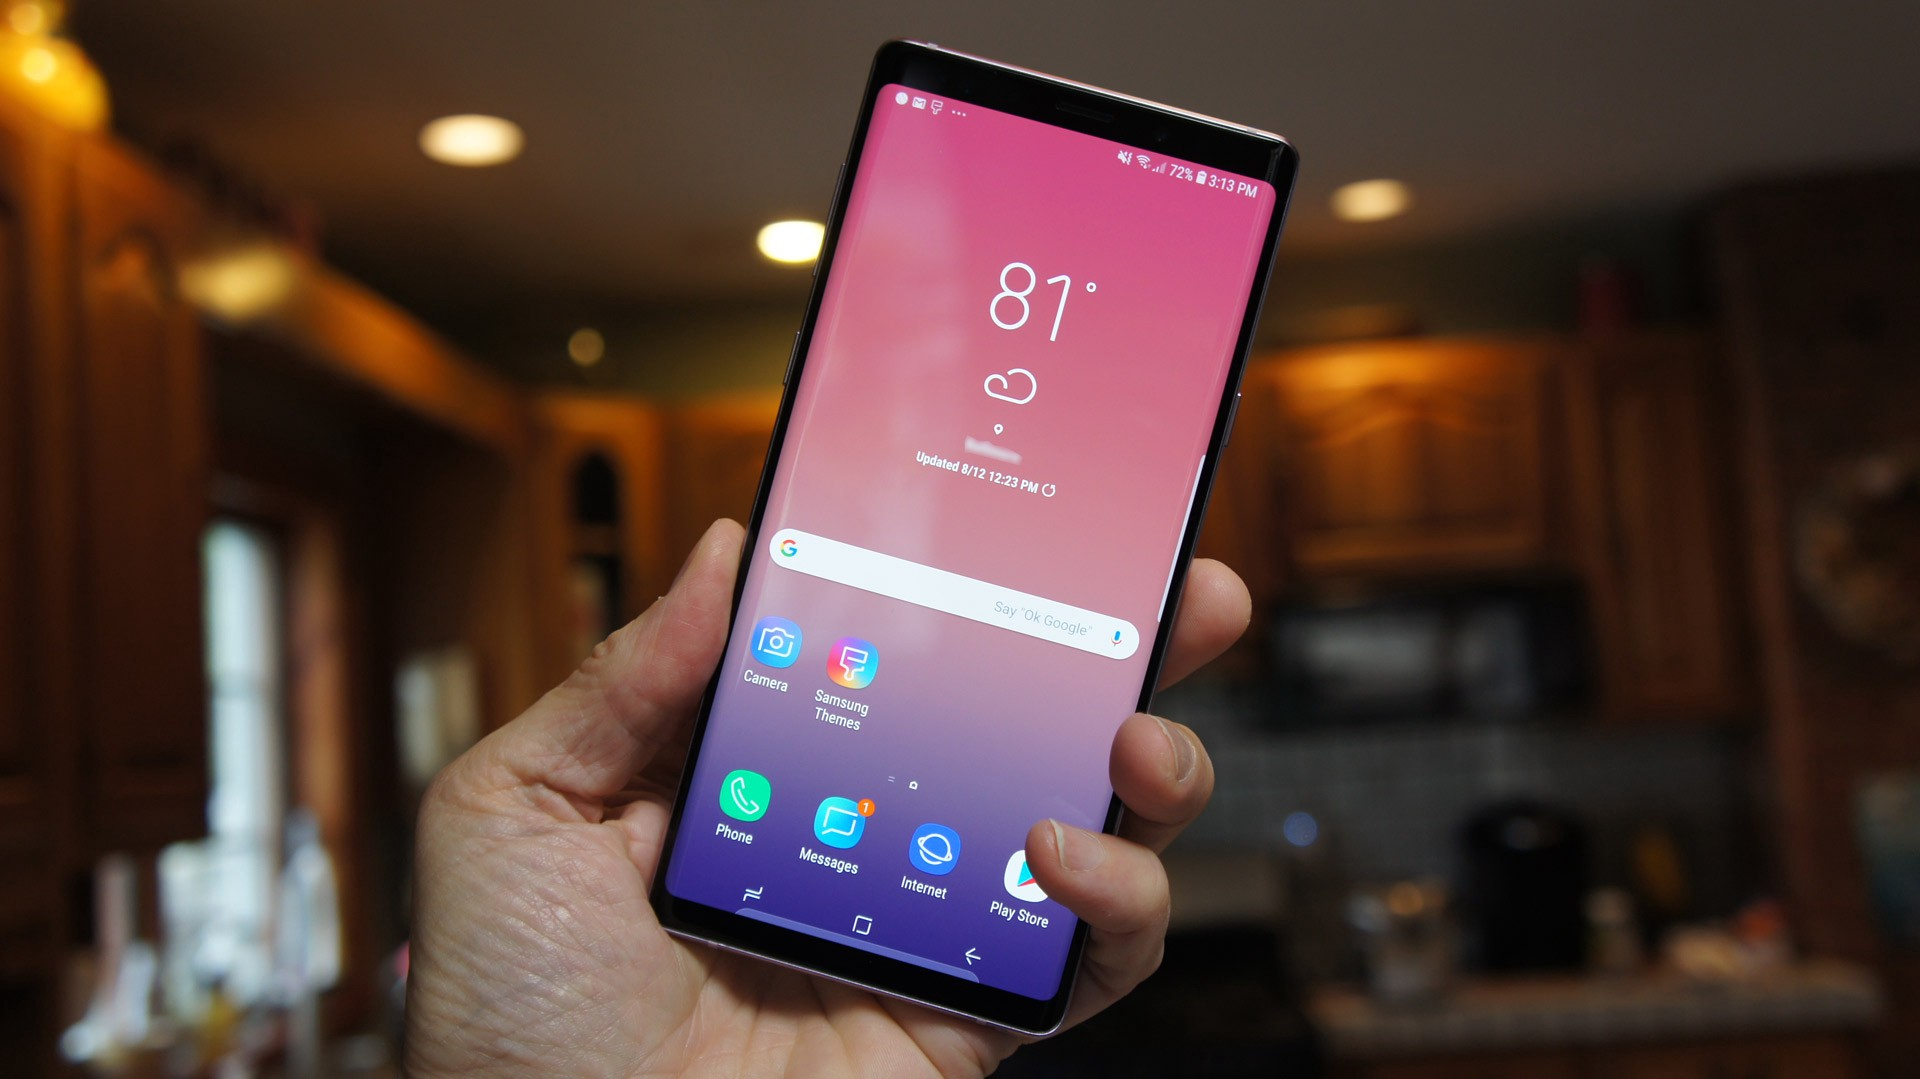 Samsung Galaxy Note 9 is everything you want Android to be